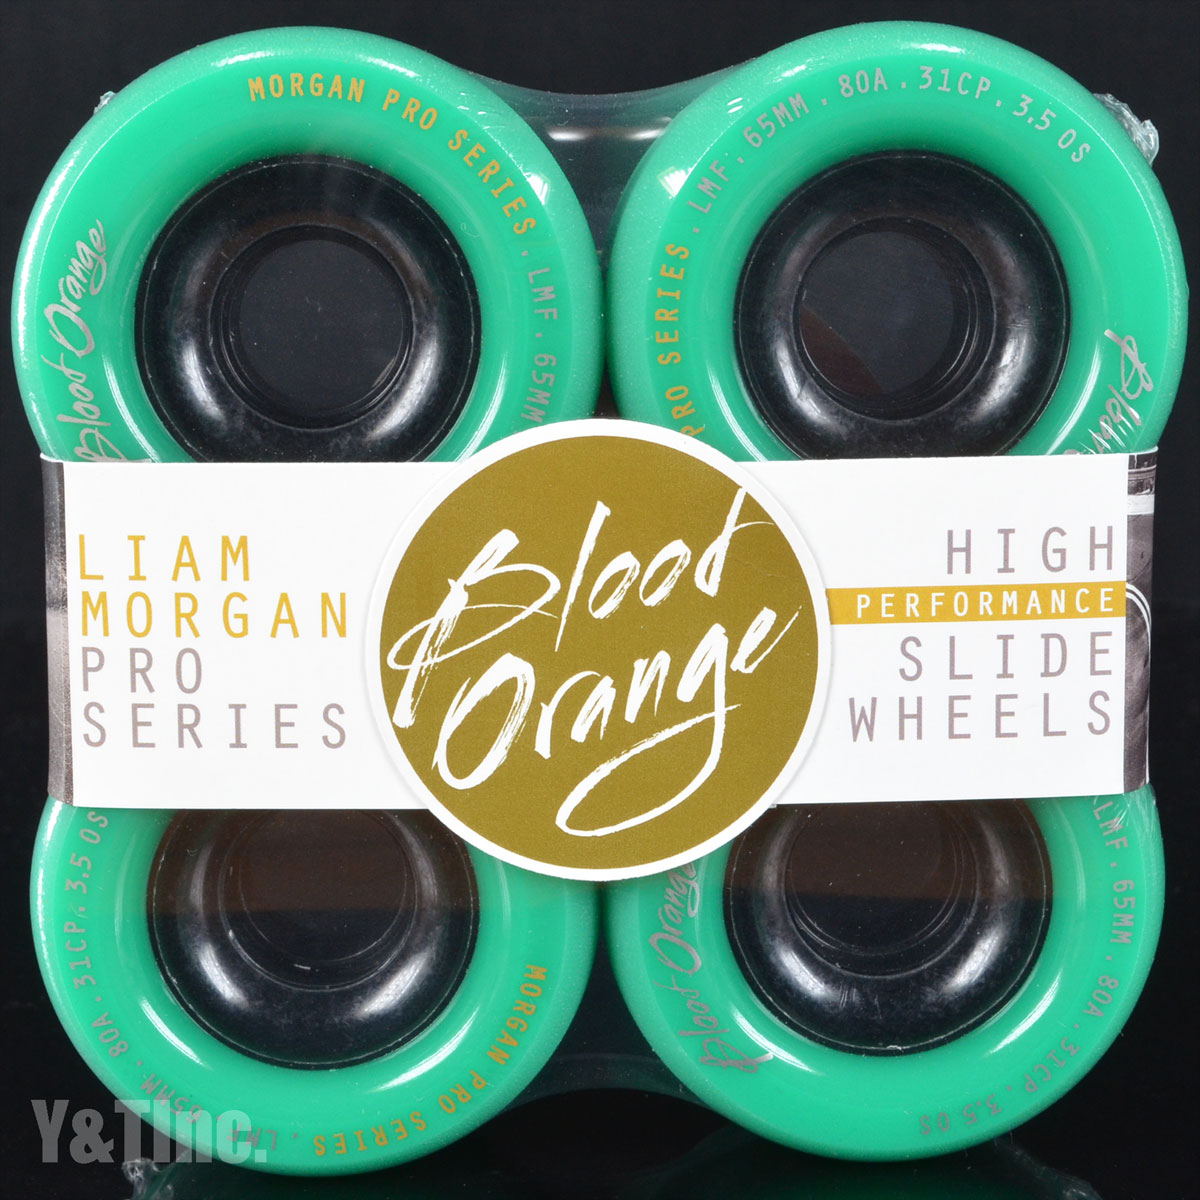 BLOOD ORANGE MORGAN 65mm 80a TURQUOISE 1